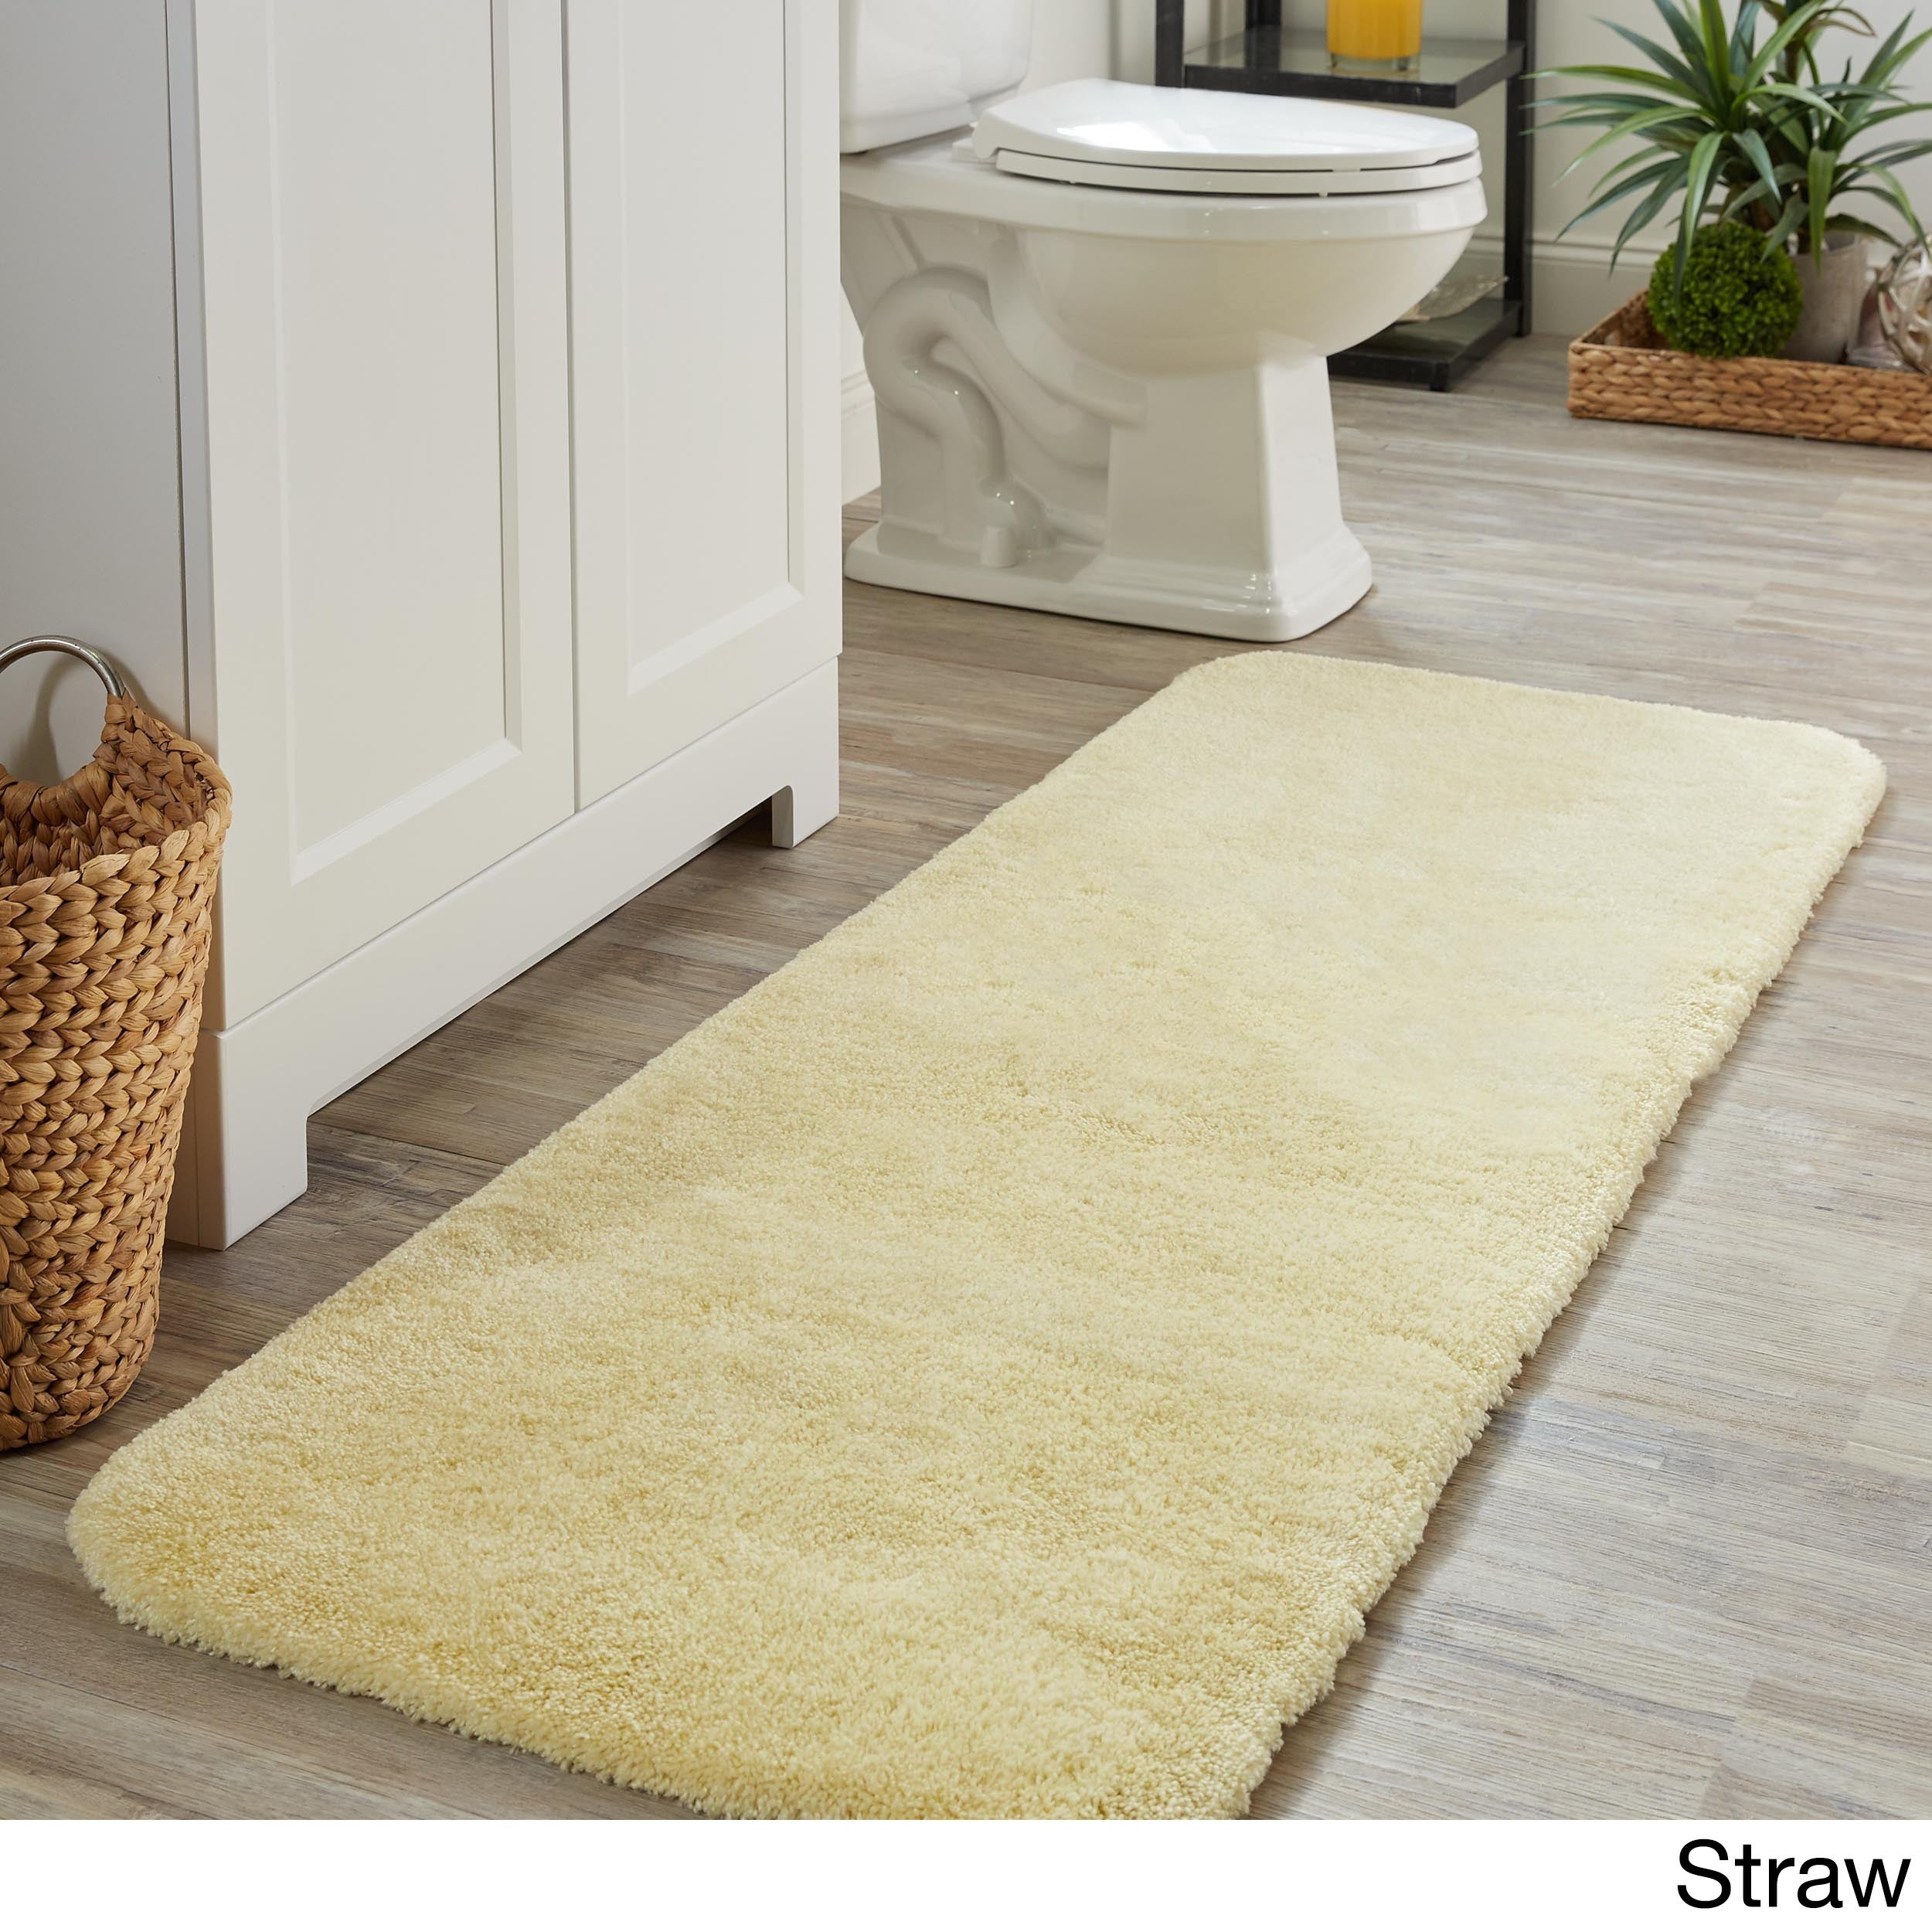 straw rugs style natural sisal non solid mats doormatnordic h nordic color post doormat mat slip w simple area x